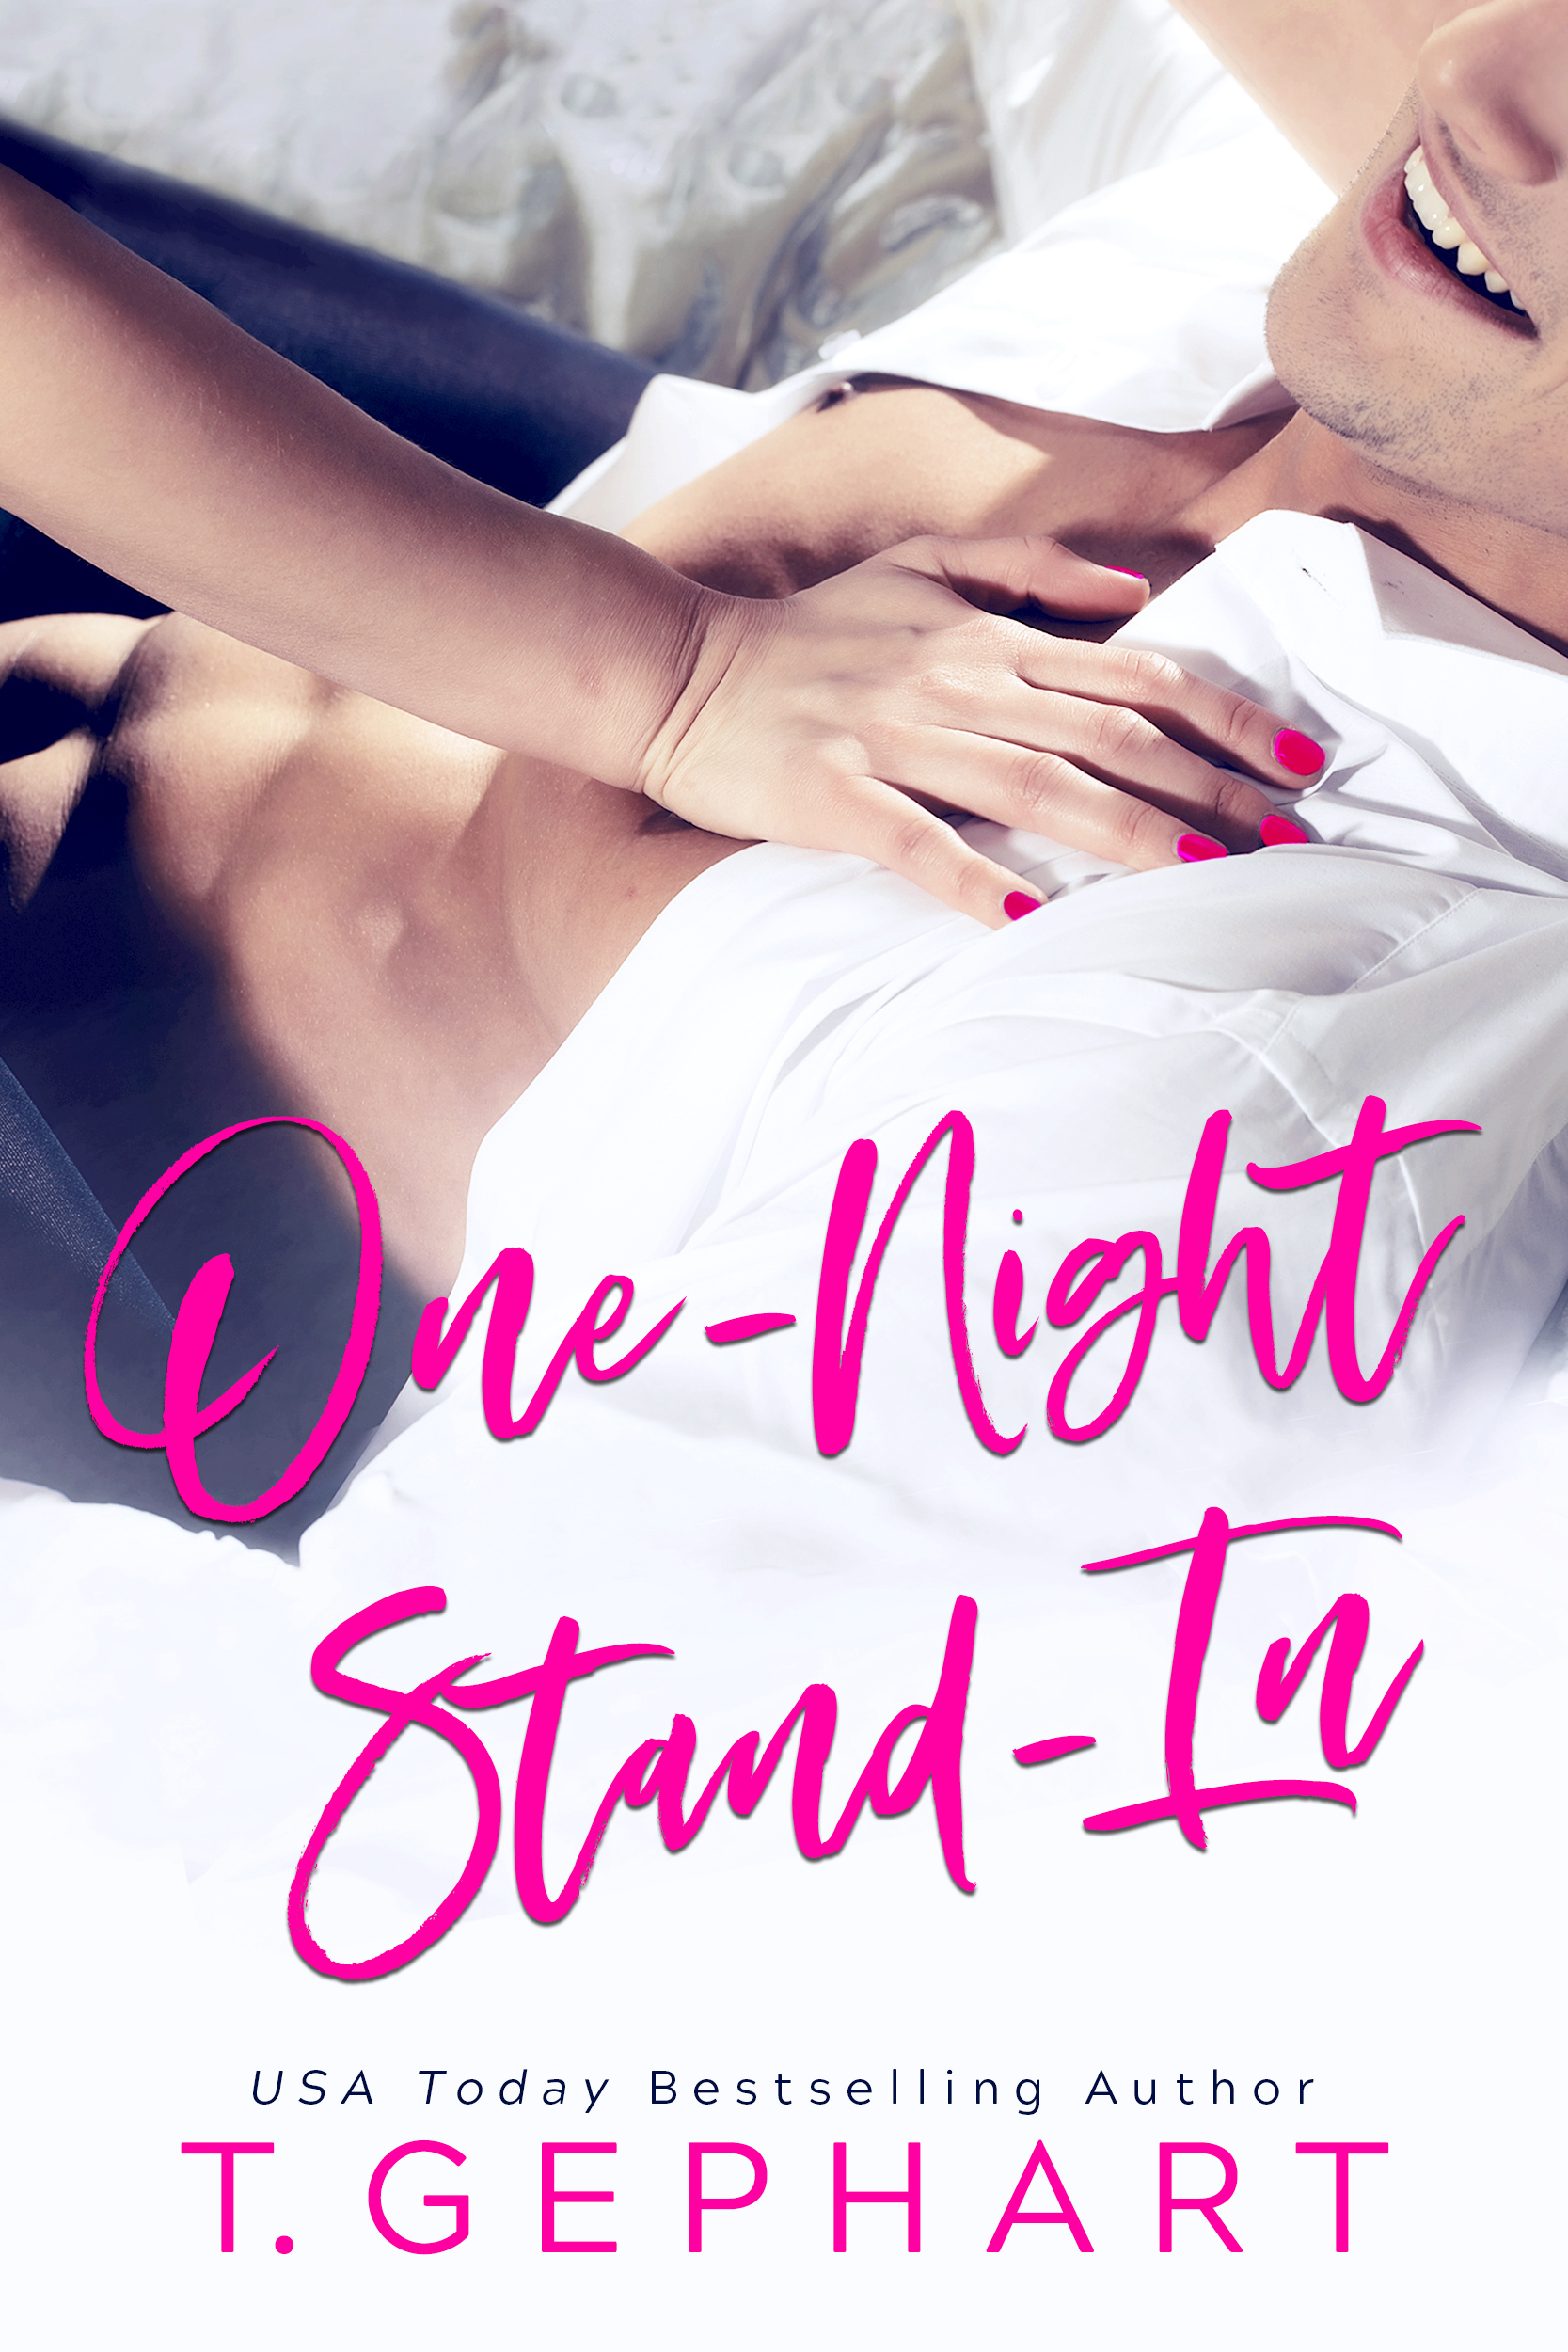 One-Night Stand-In